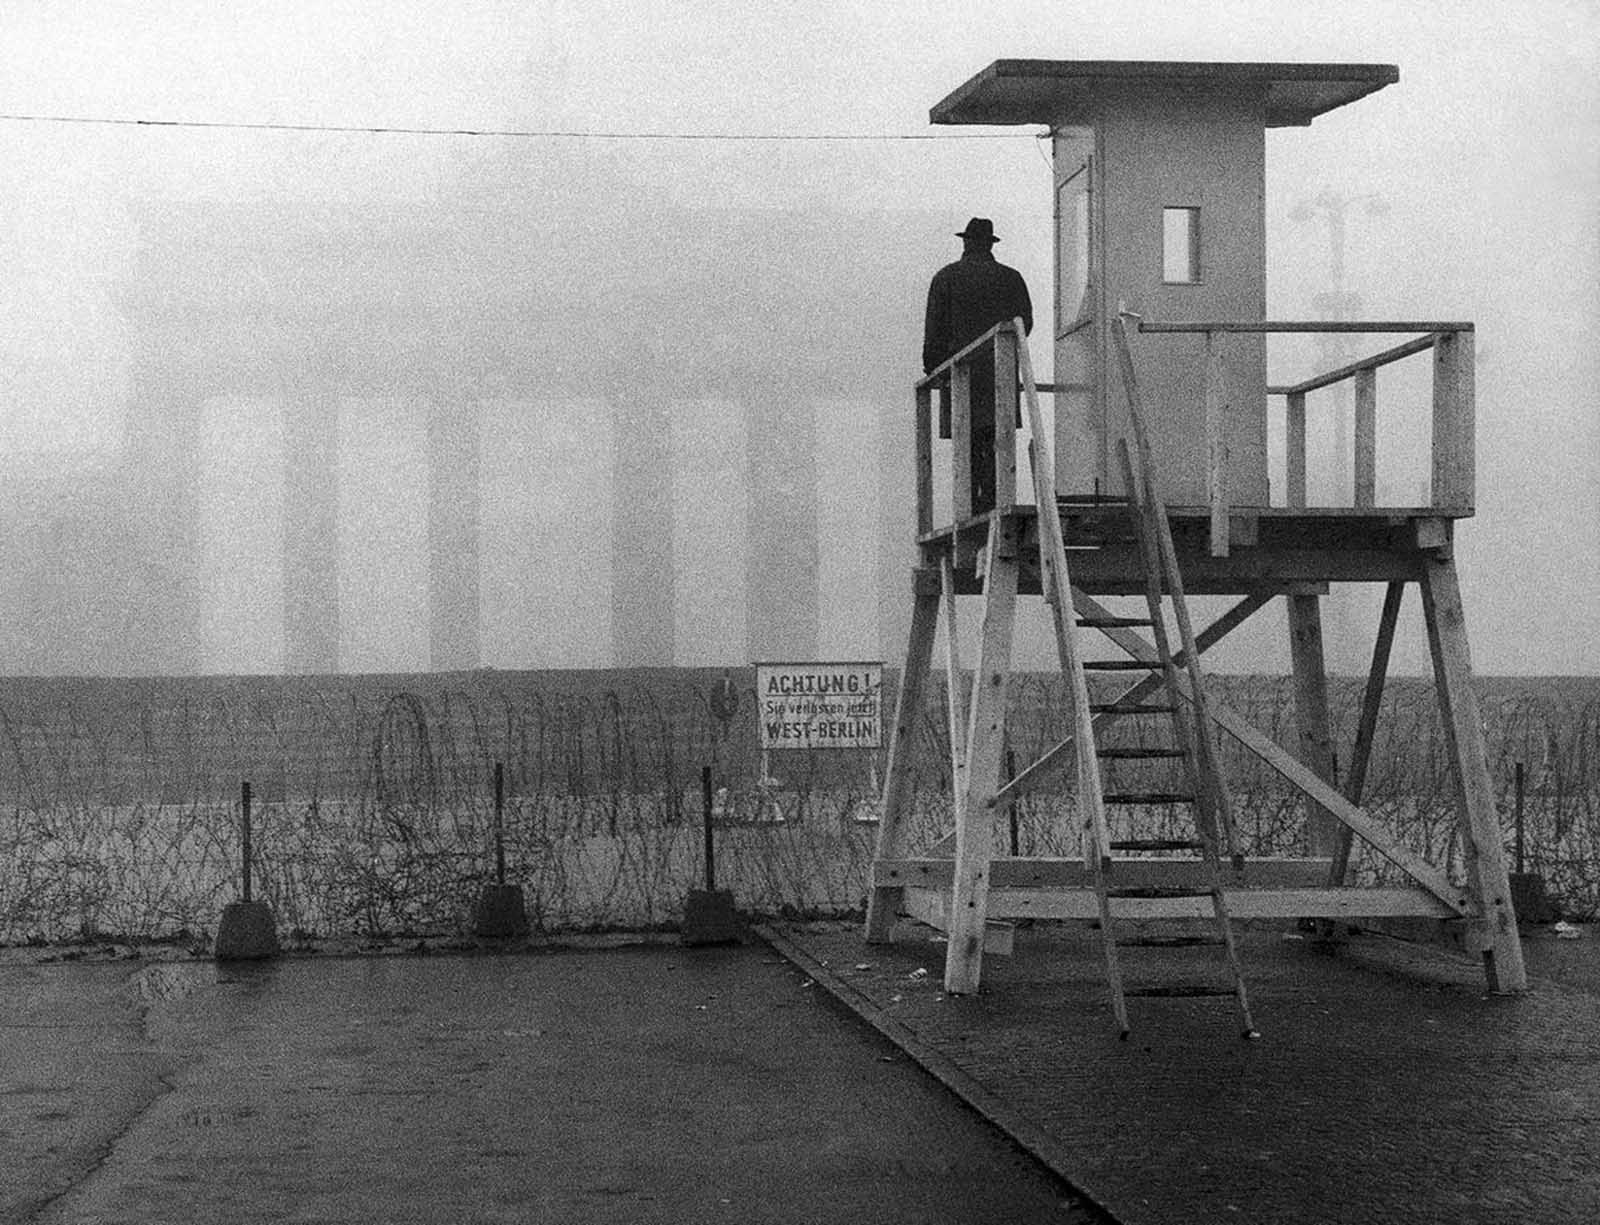 The Brandenburg Gate is shrouded in fog as a man looks from a watchtower over the Wall to the Eastern part of the divided city on November 25, 1961. The tower was erected by the West German police to observe the Inner-German border.